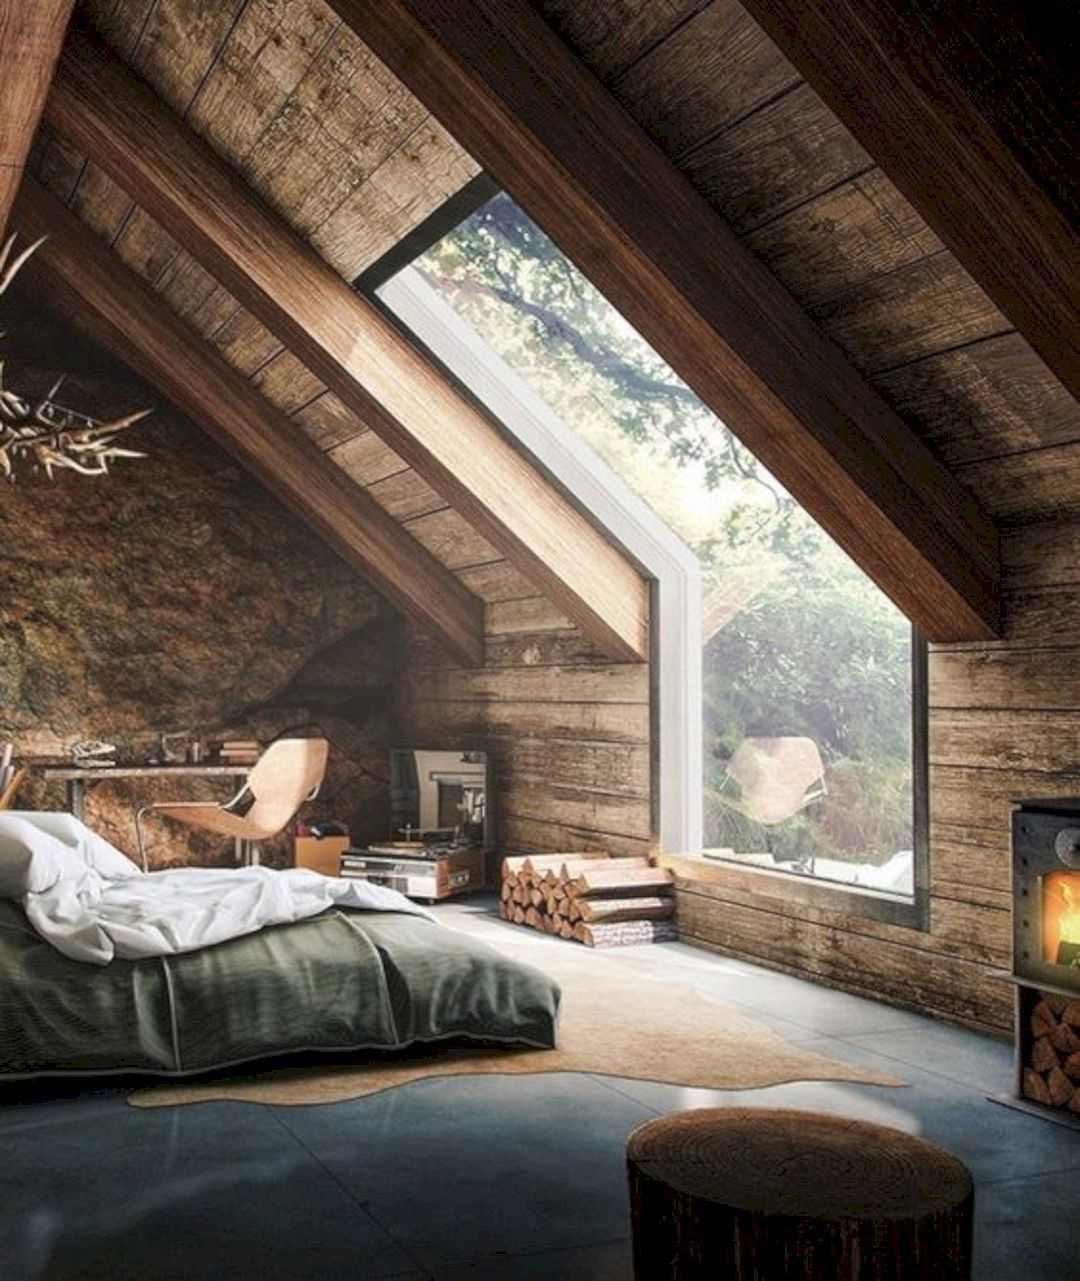 Charmant 16 Ideas To Bring Out A Rustic Interior Design At Home   Futurist  Architecture